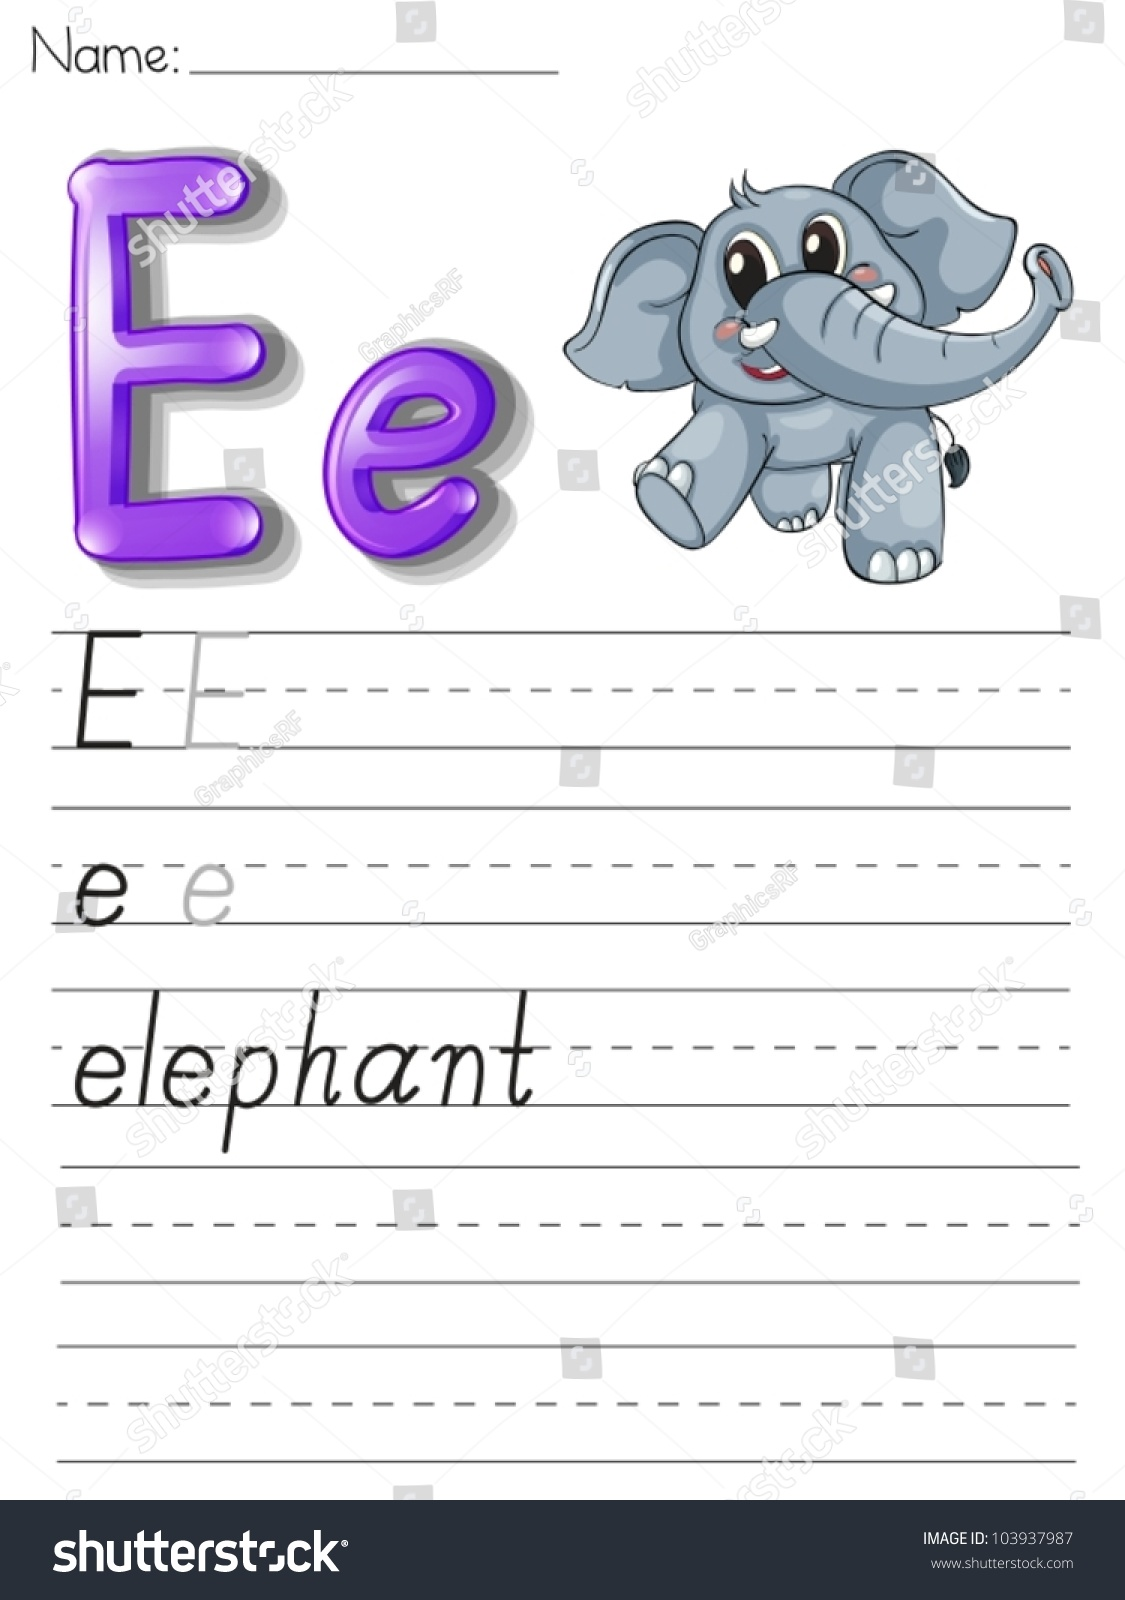 Alphabet Worksheet On White Paper Stock Vector